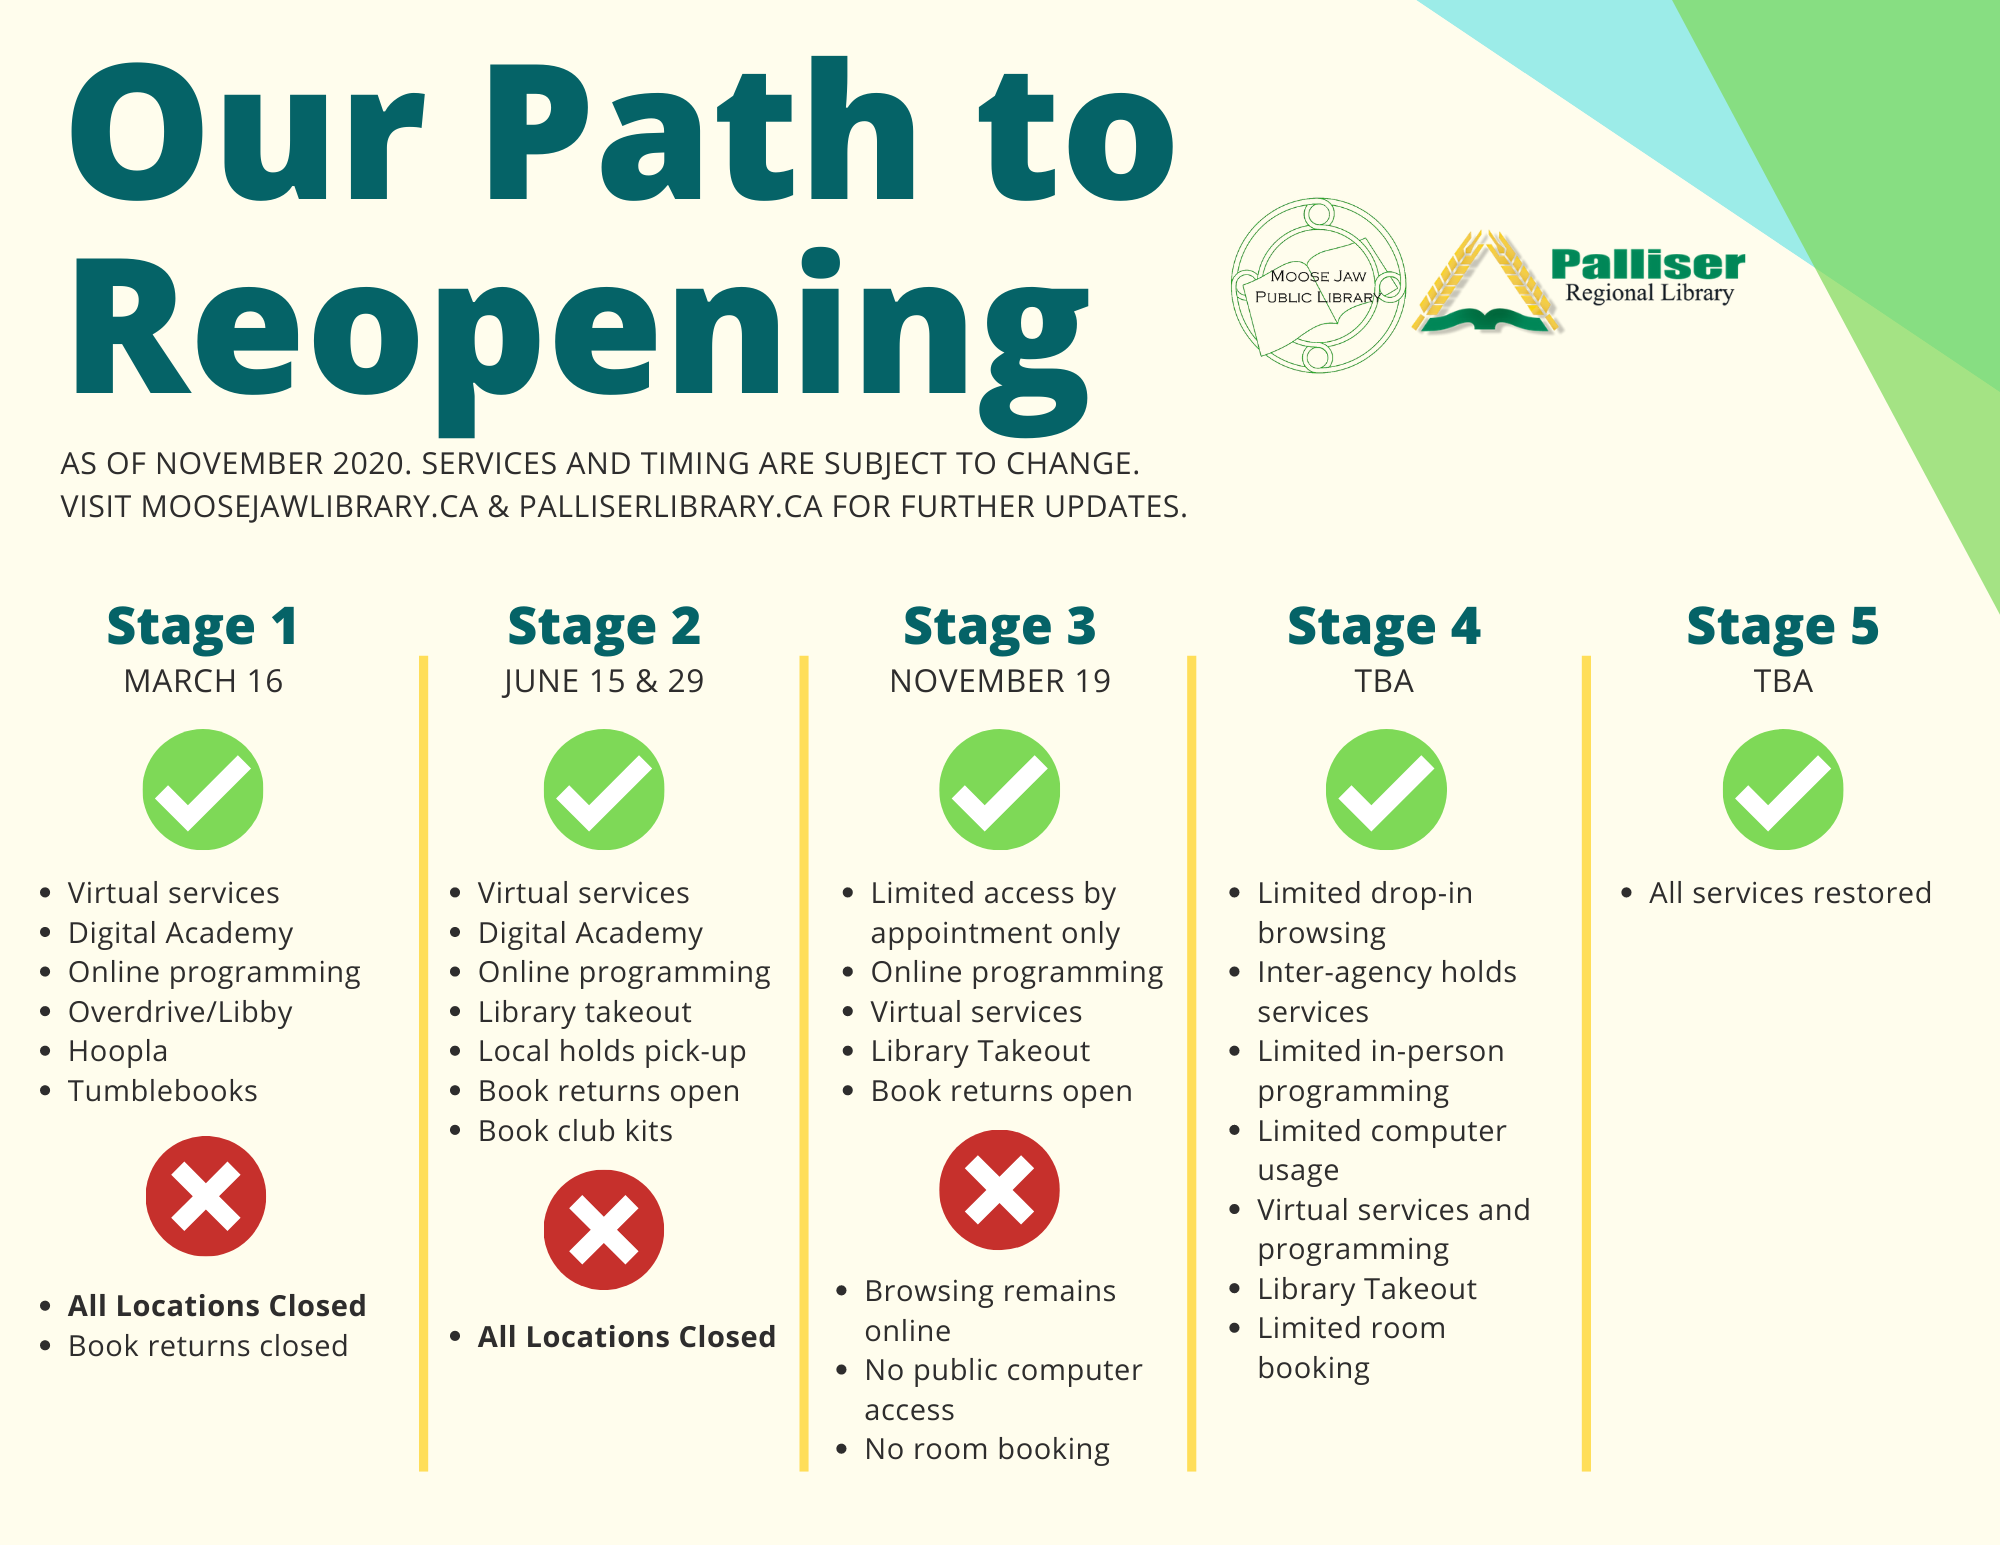 Our Path to Reopening